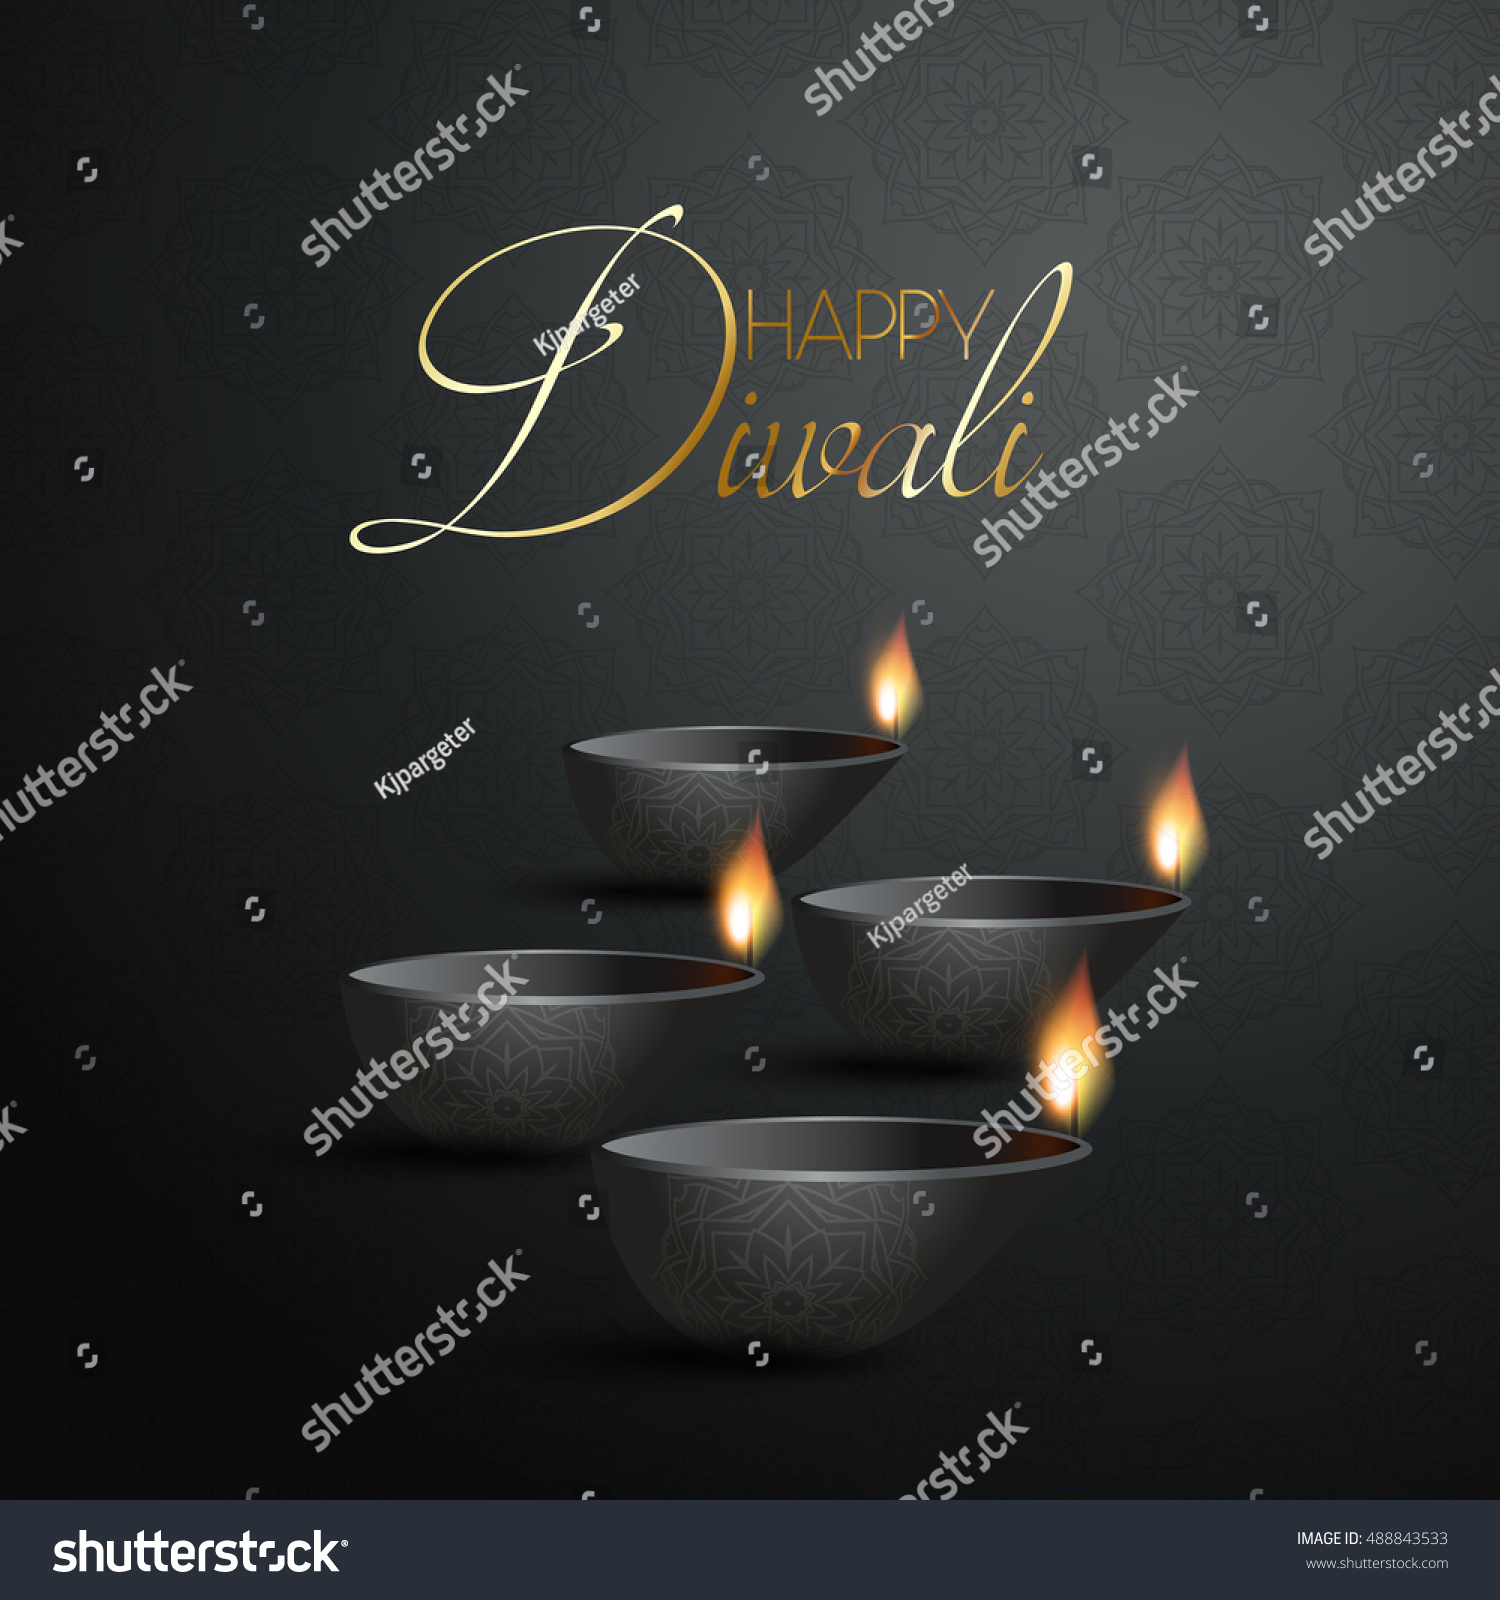 Decorative Diwali background with burning Diya lamps